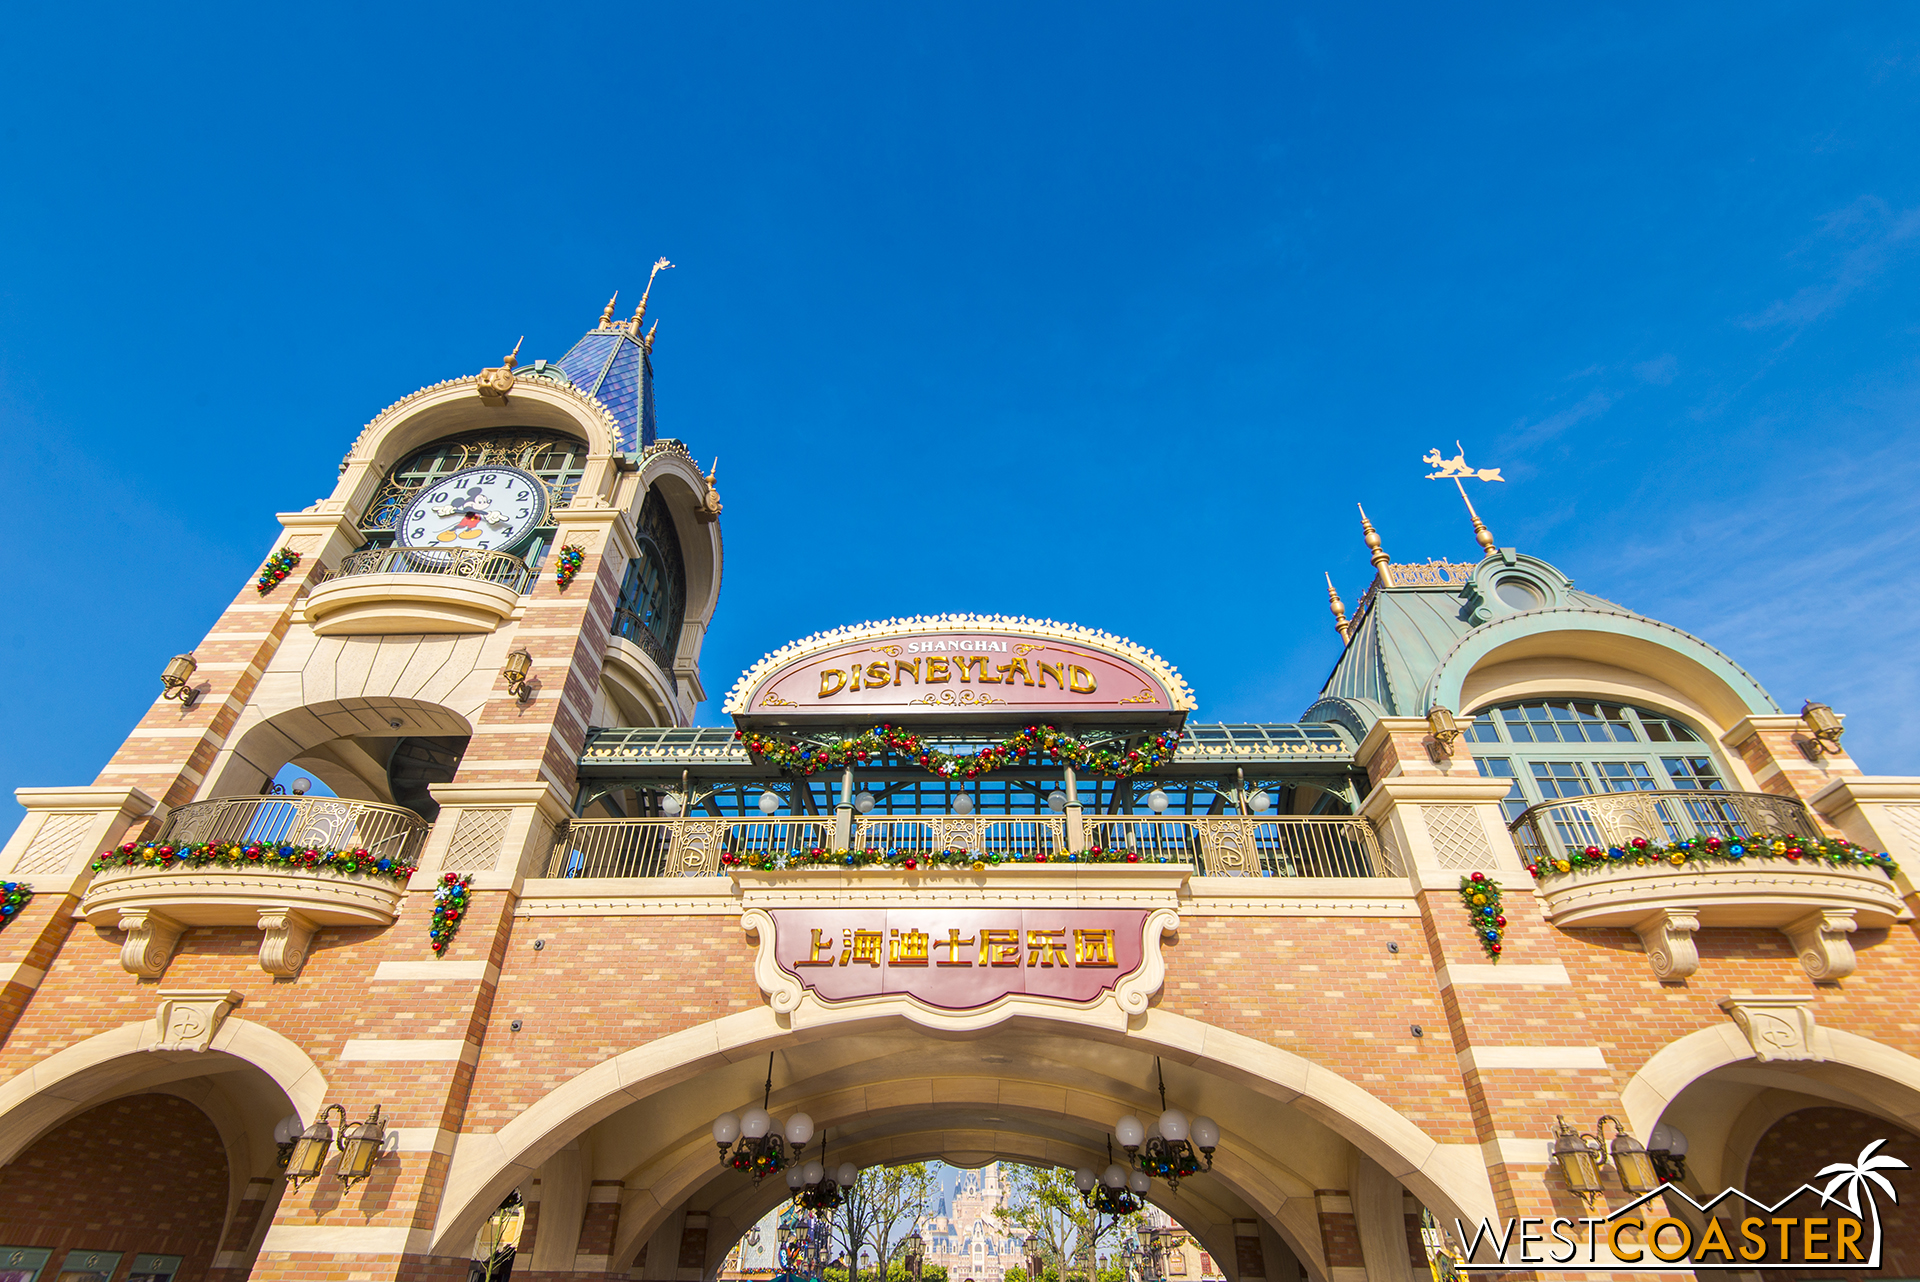 This archway into Mickey Avenue proper may look like the train station, but there actually is no Disneyland Railroad in Shanghai Disneyland.